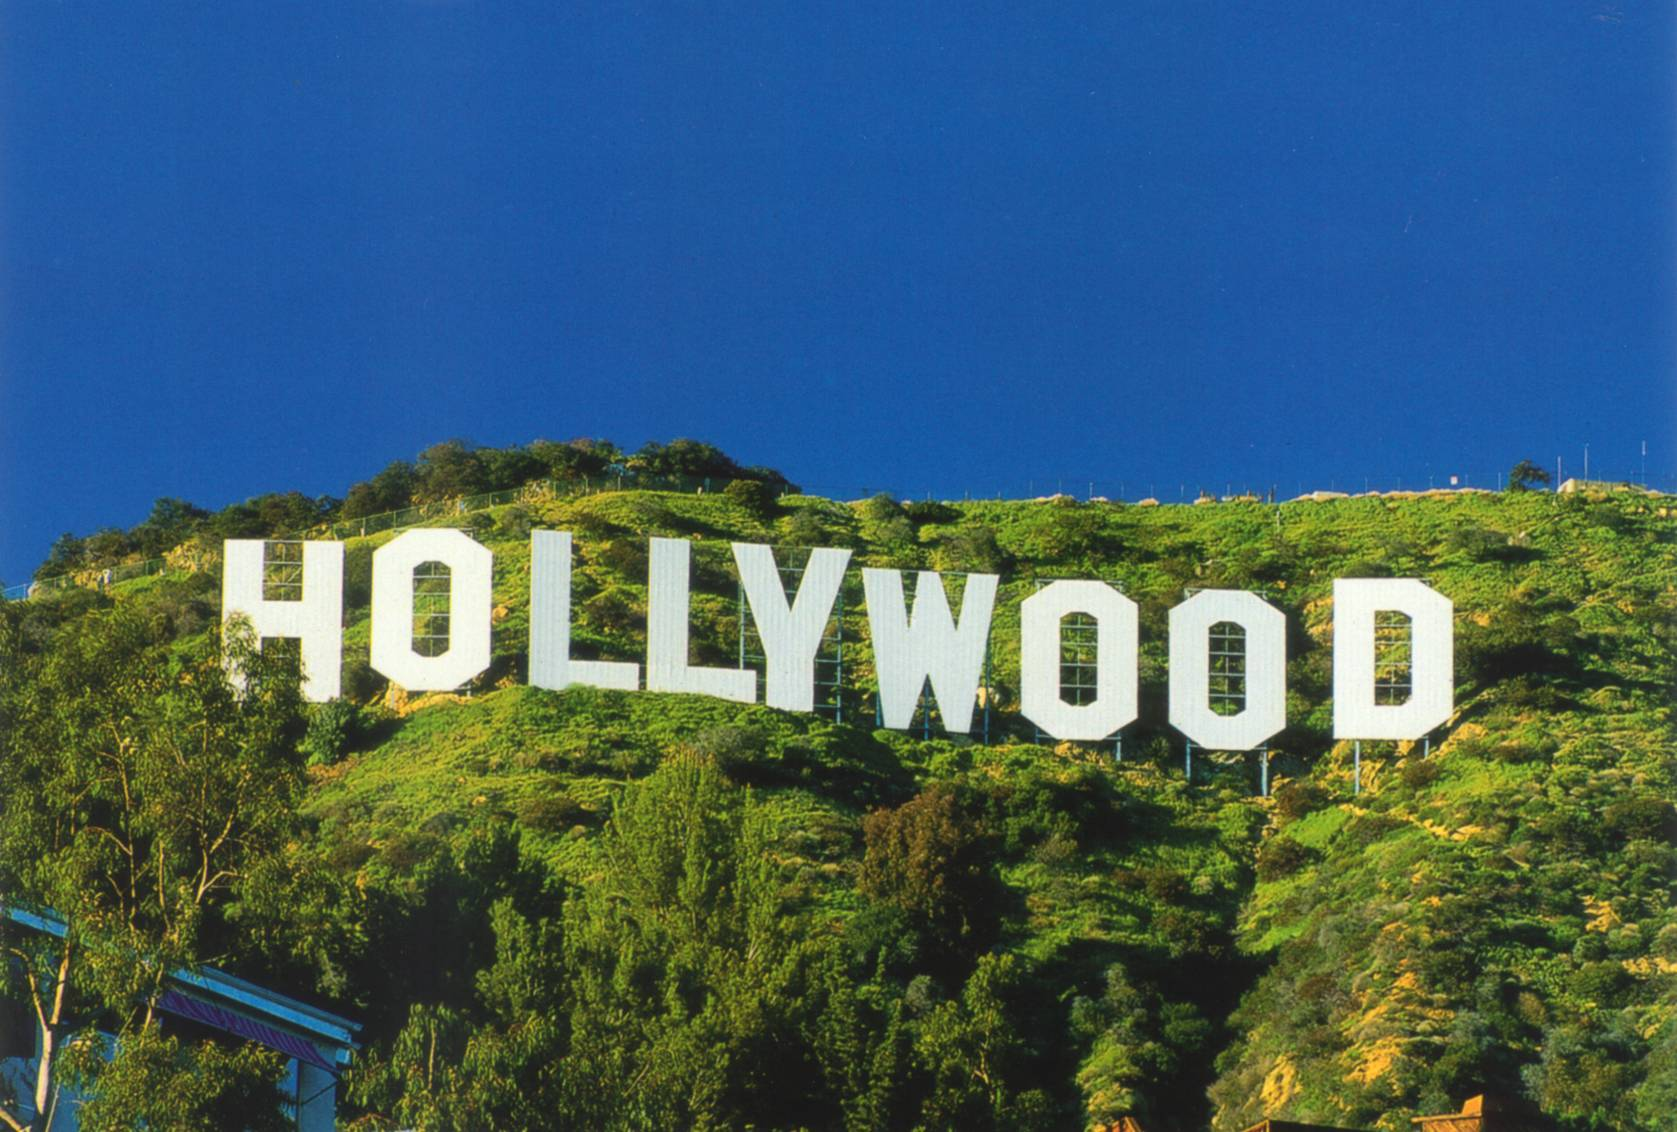 wallpapers a hollywood - photo #2